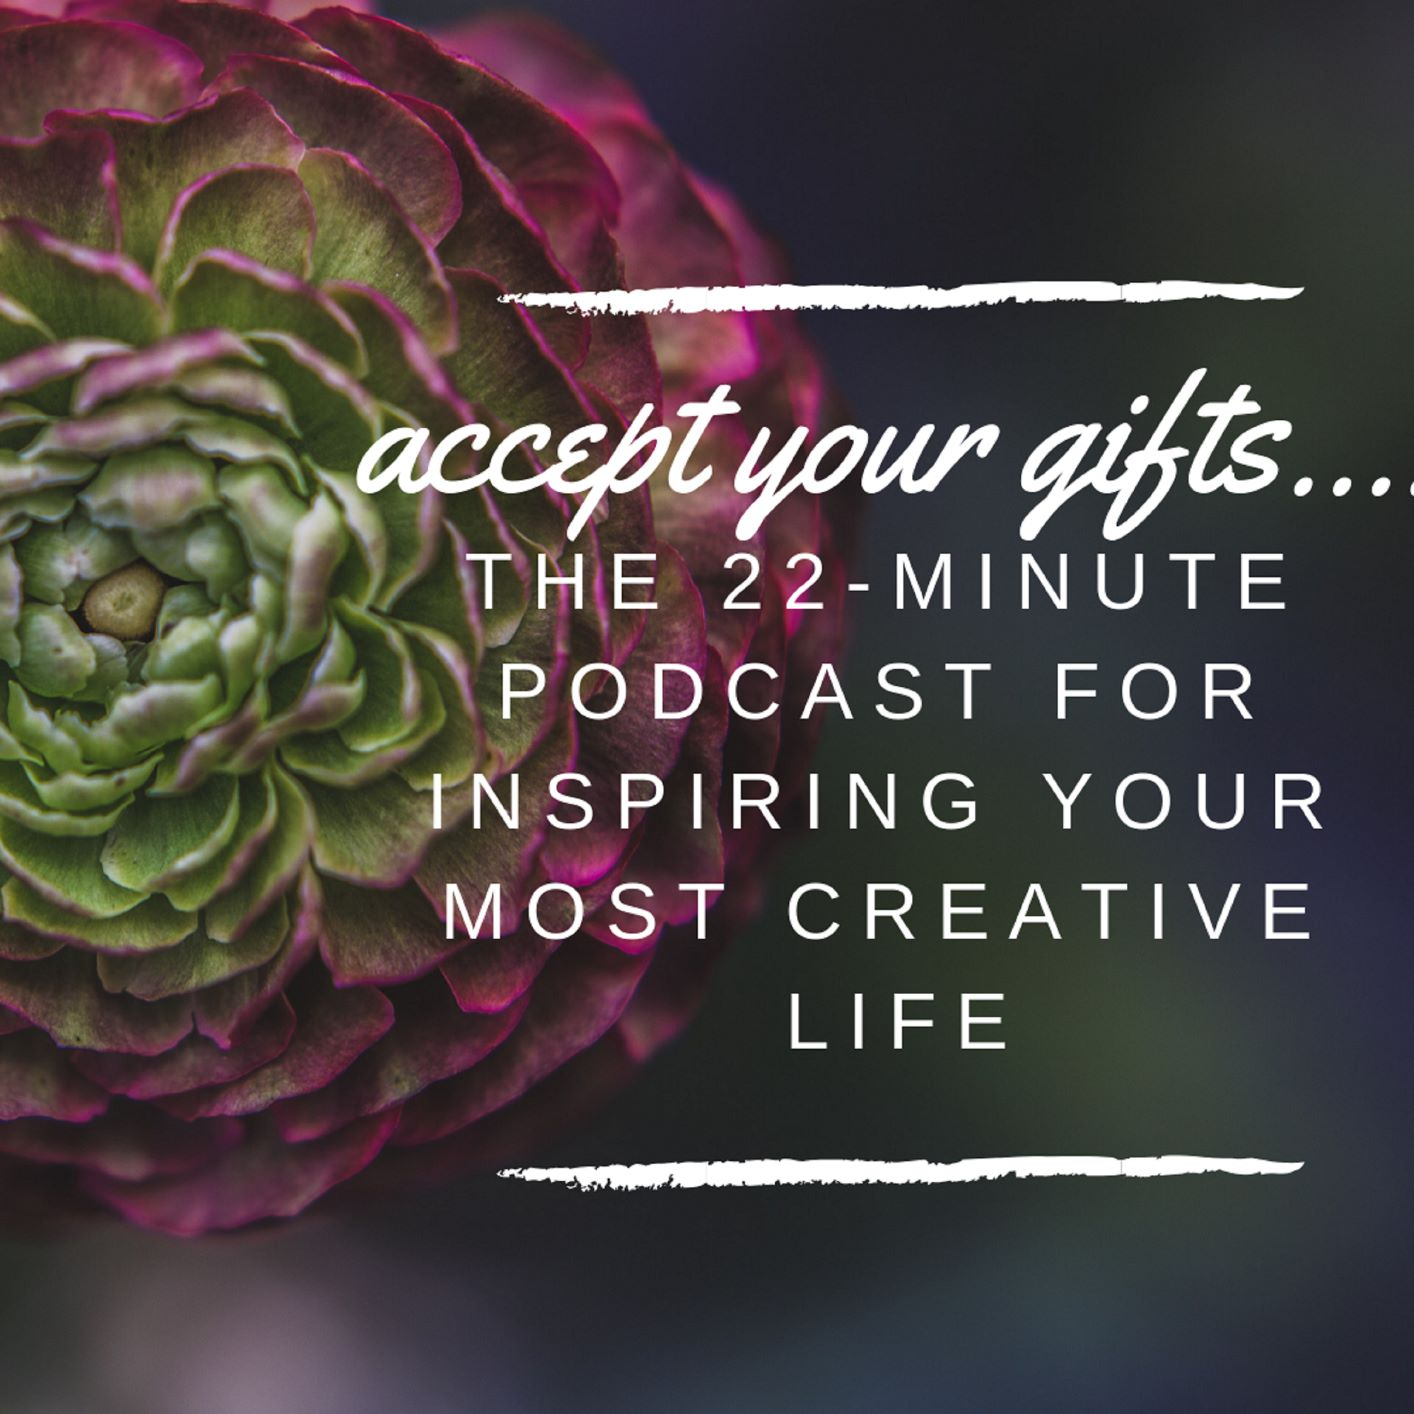 accept your gifts podcast